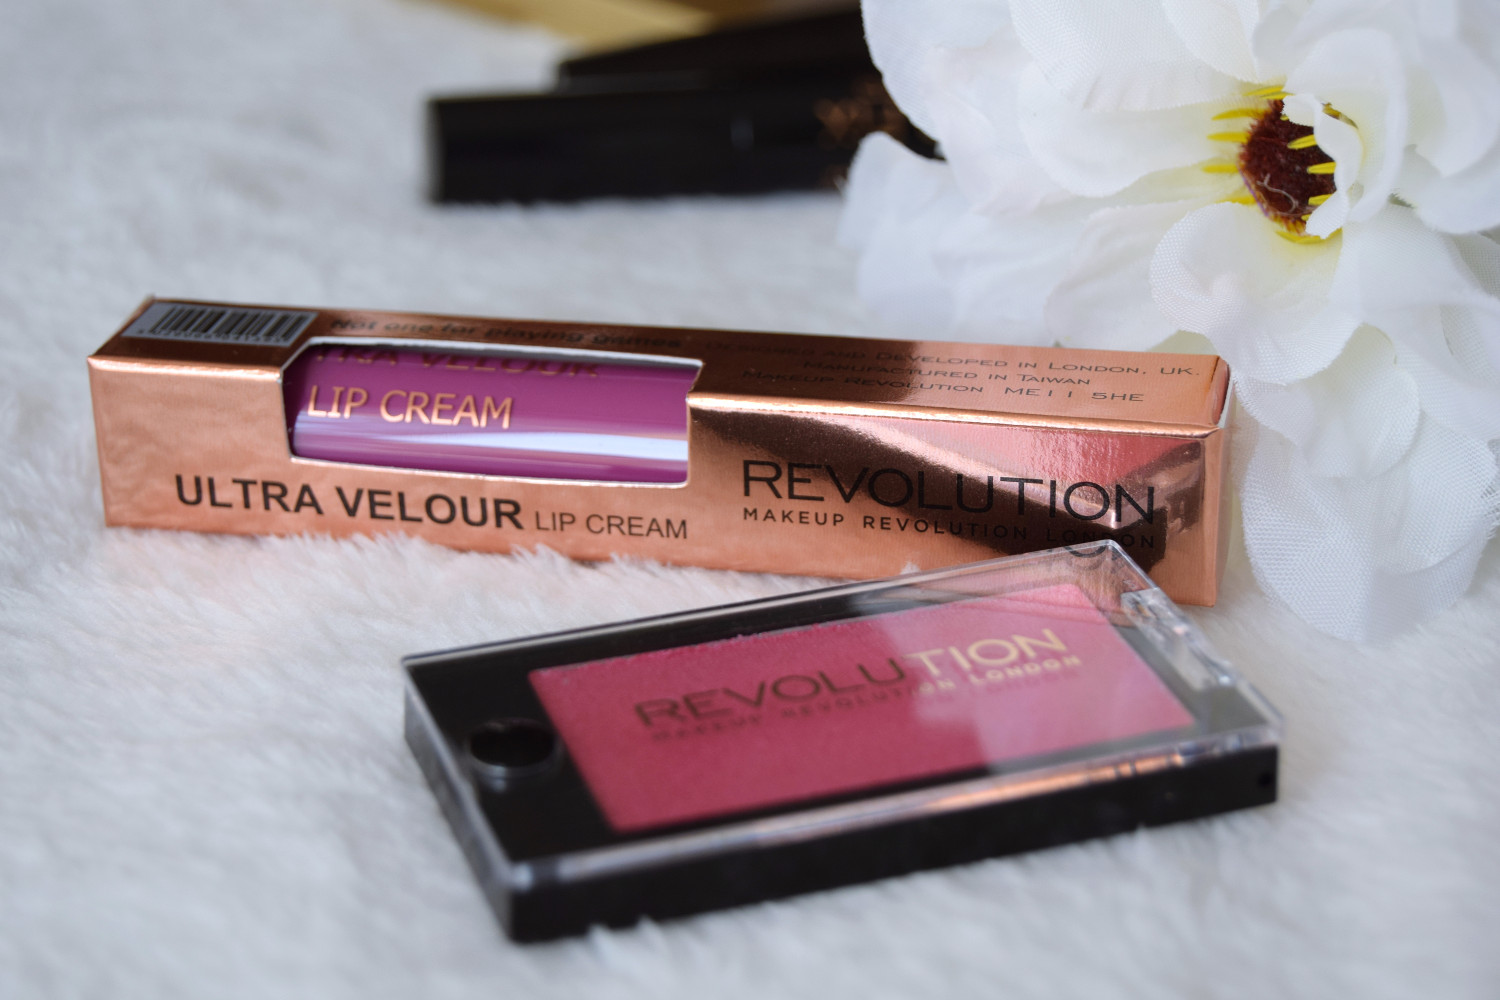 Makeup_Revolution_London_haul_review_lip_cream_eyeshadow_pink_Zalabell_1